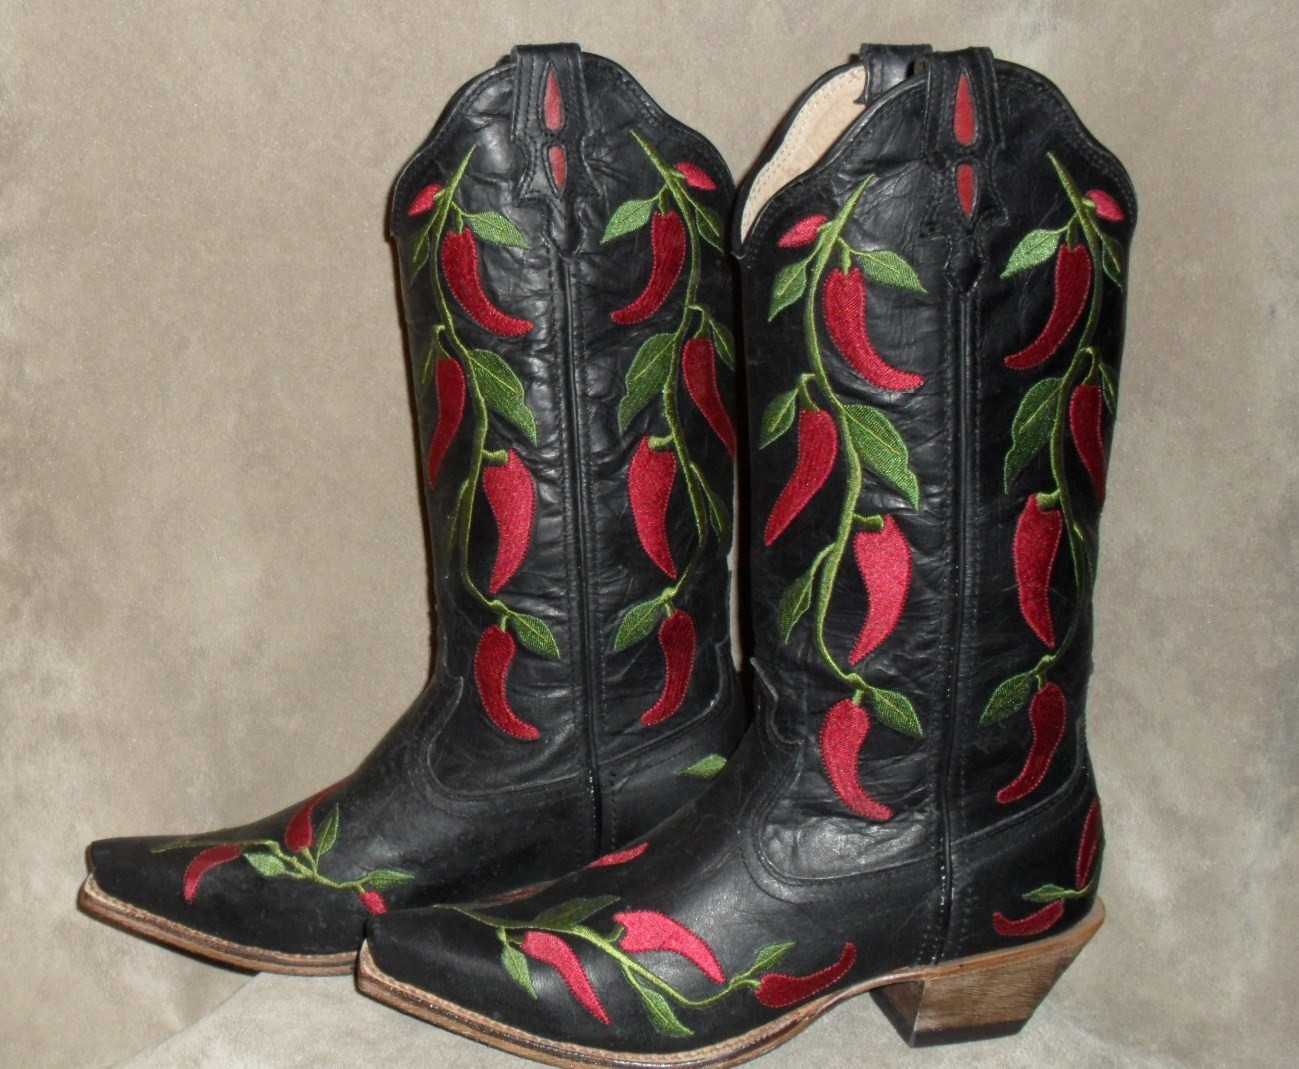 Brand new Twisted X boots....Hot, and we mean HOT!